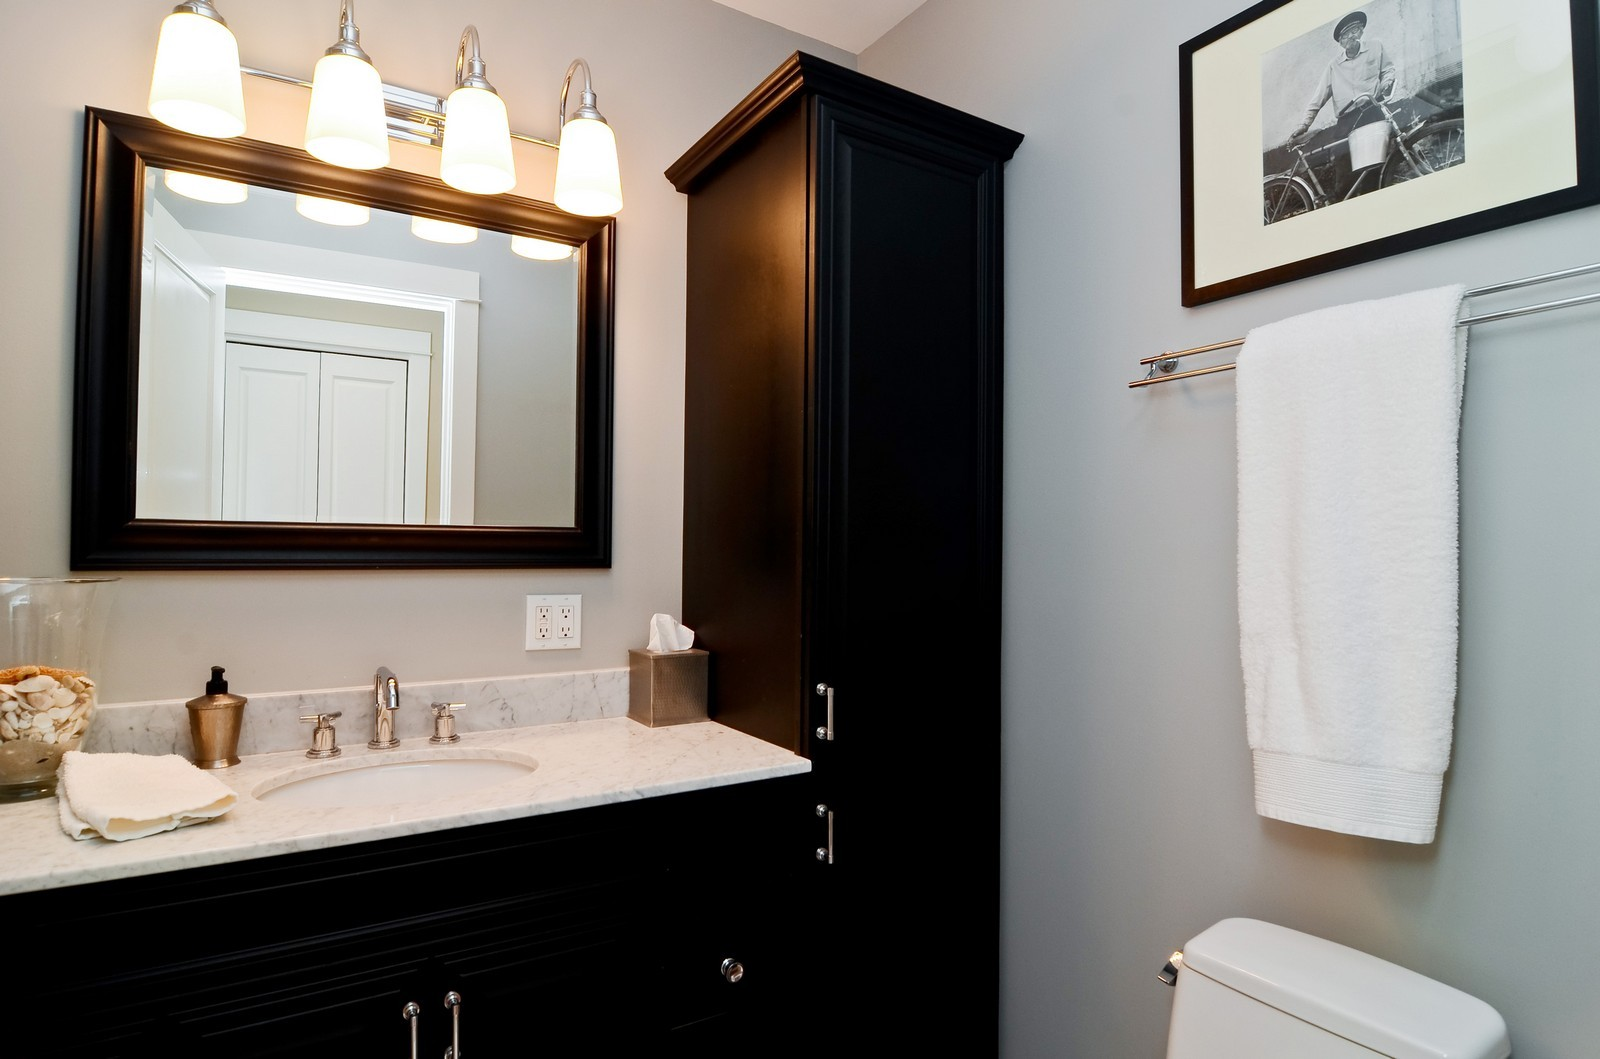 Real Estate Photography - 4332 N Keeler, Chicago, IL, 60641 - Bathroom